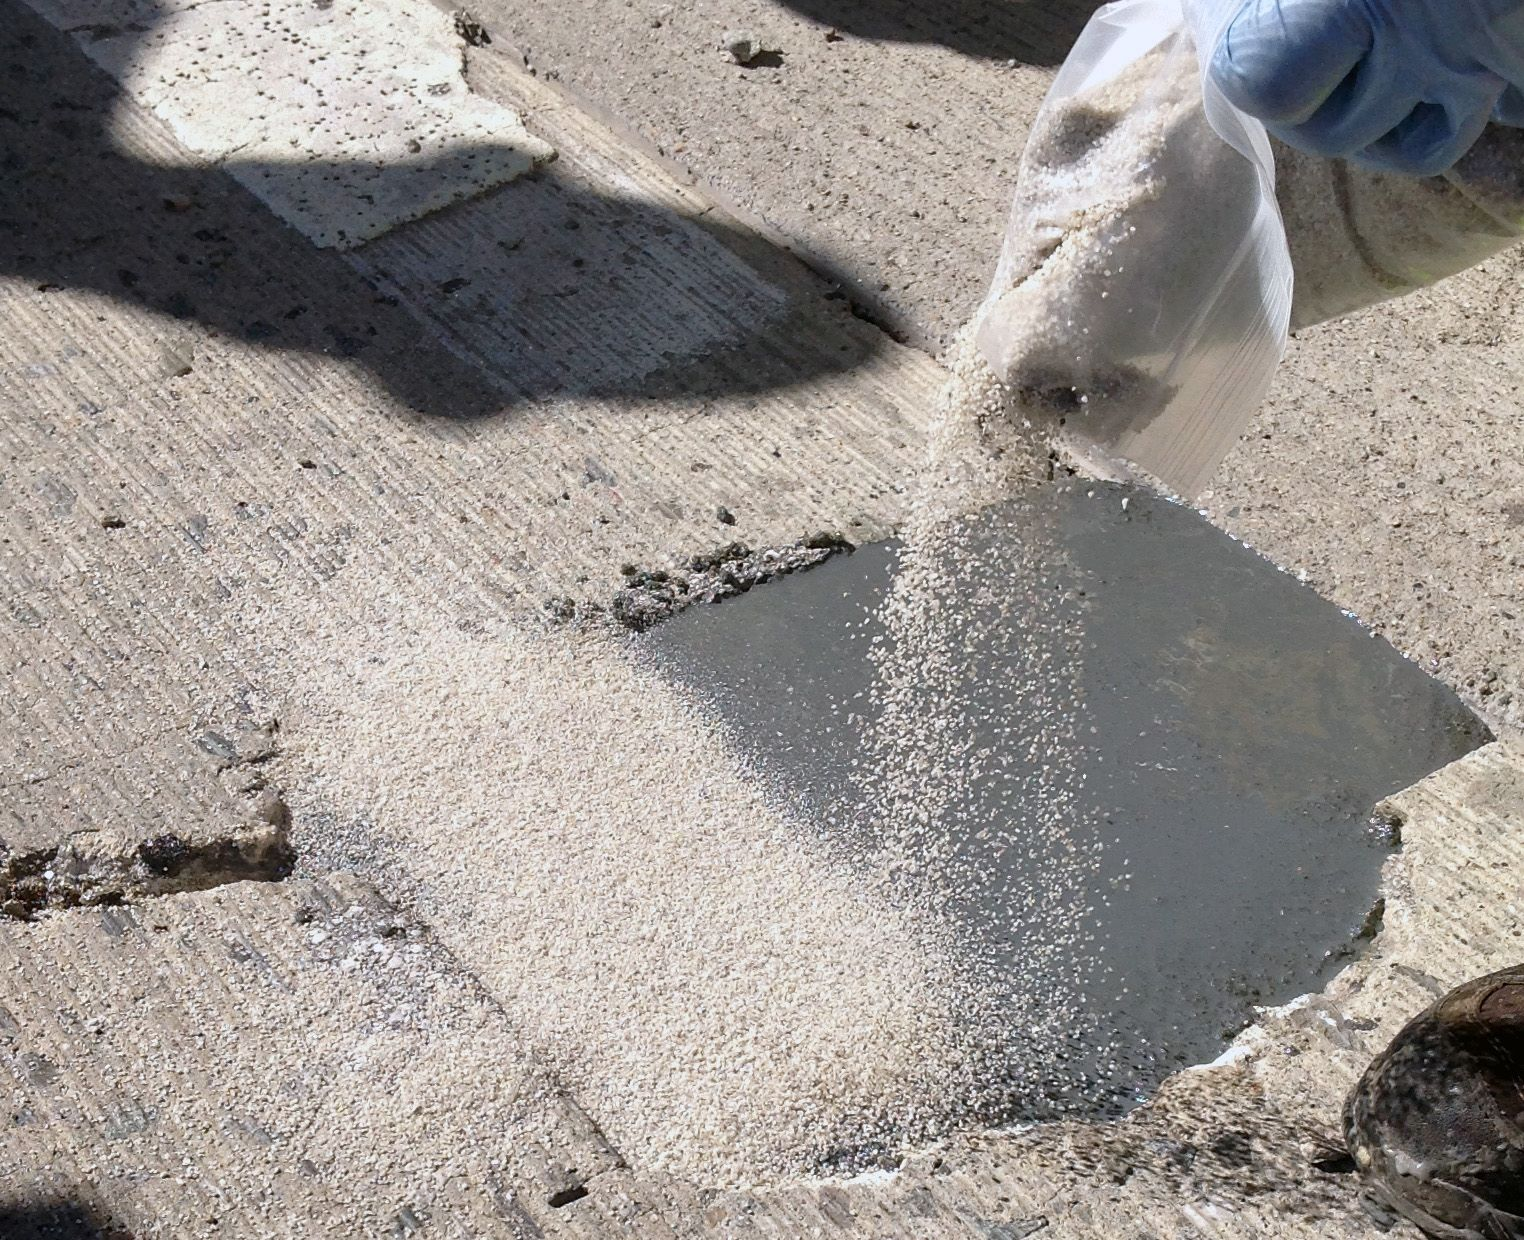 Concrete Repair Contractors With Our Clients Based All Over Bangalore And Other Region We Have Been Able To Maintain Proximi Epoxy Floor Flooring Concrete Diy